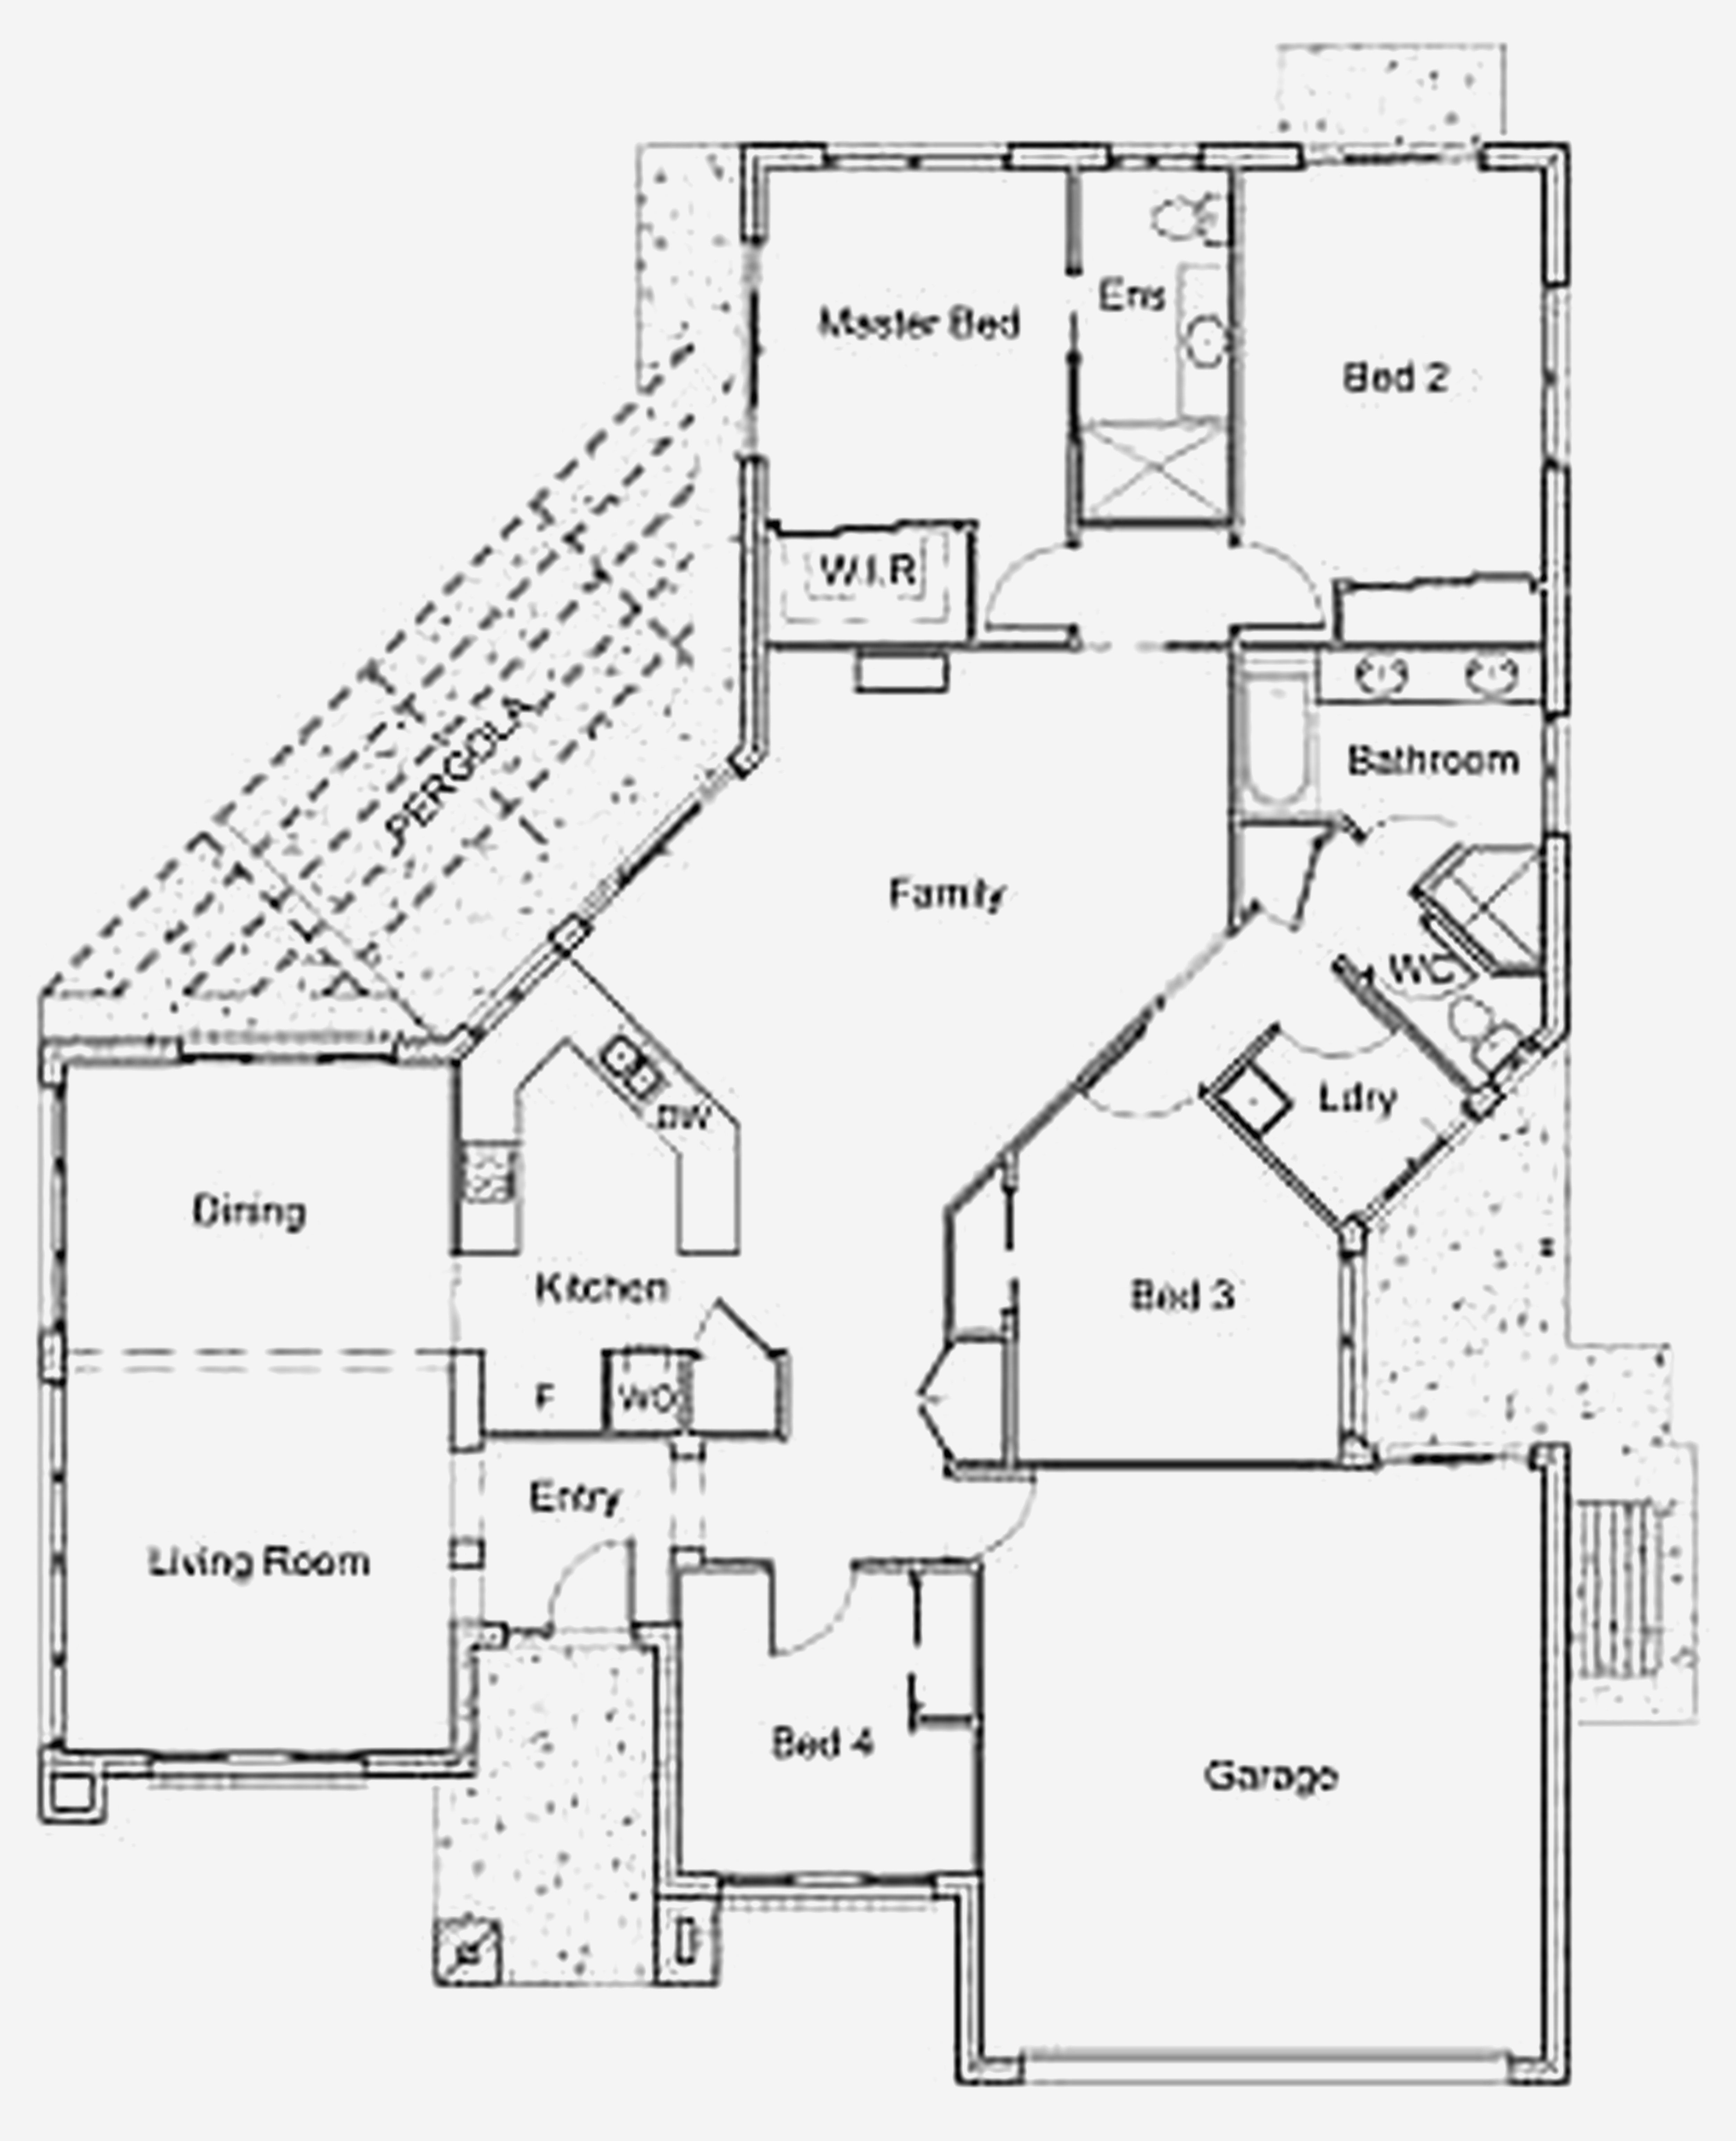 Basement Awesome Small Ranch House Plans With Basement Remodel Interior Planning House Ideas Open Floor House Plans Craftsman House Plans Beautiful House Plans